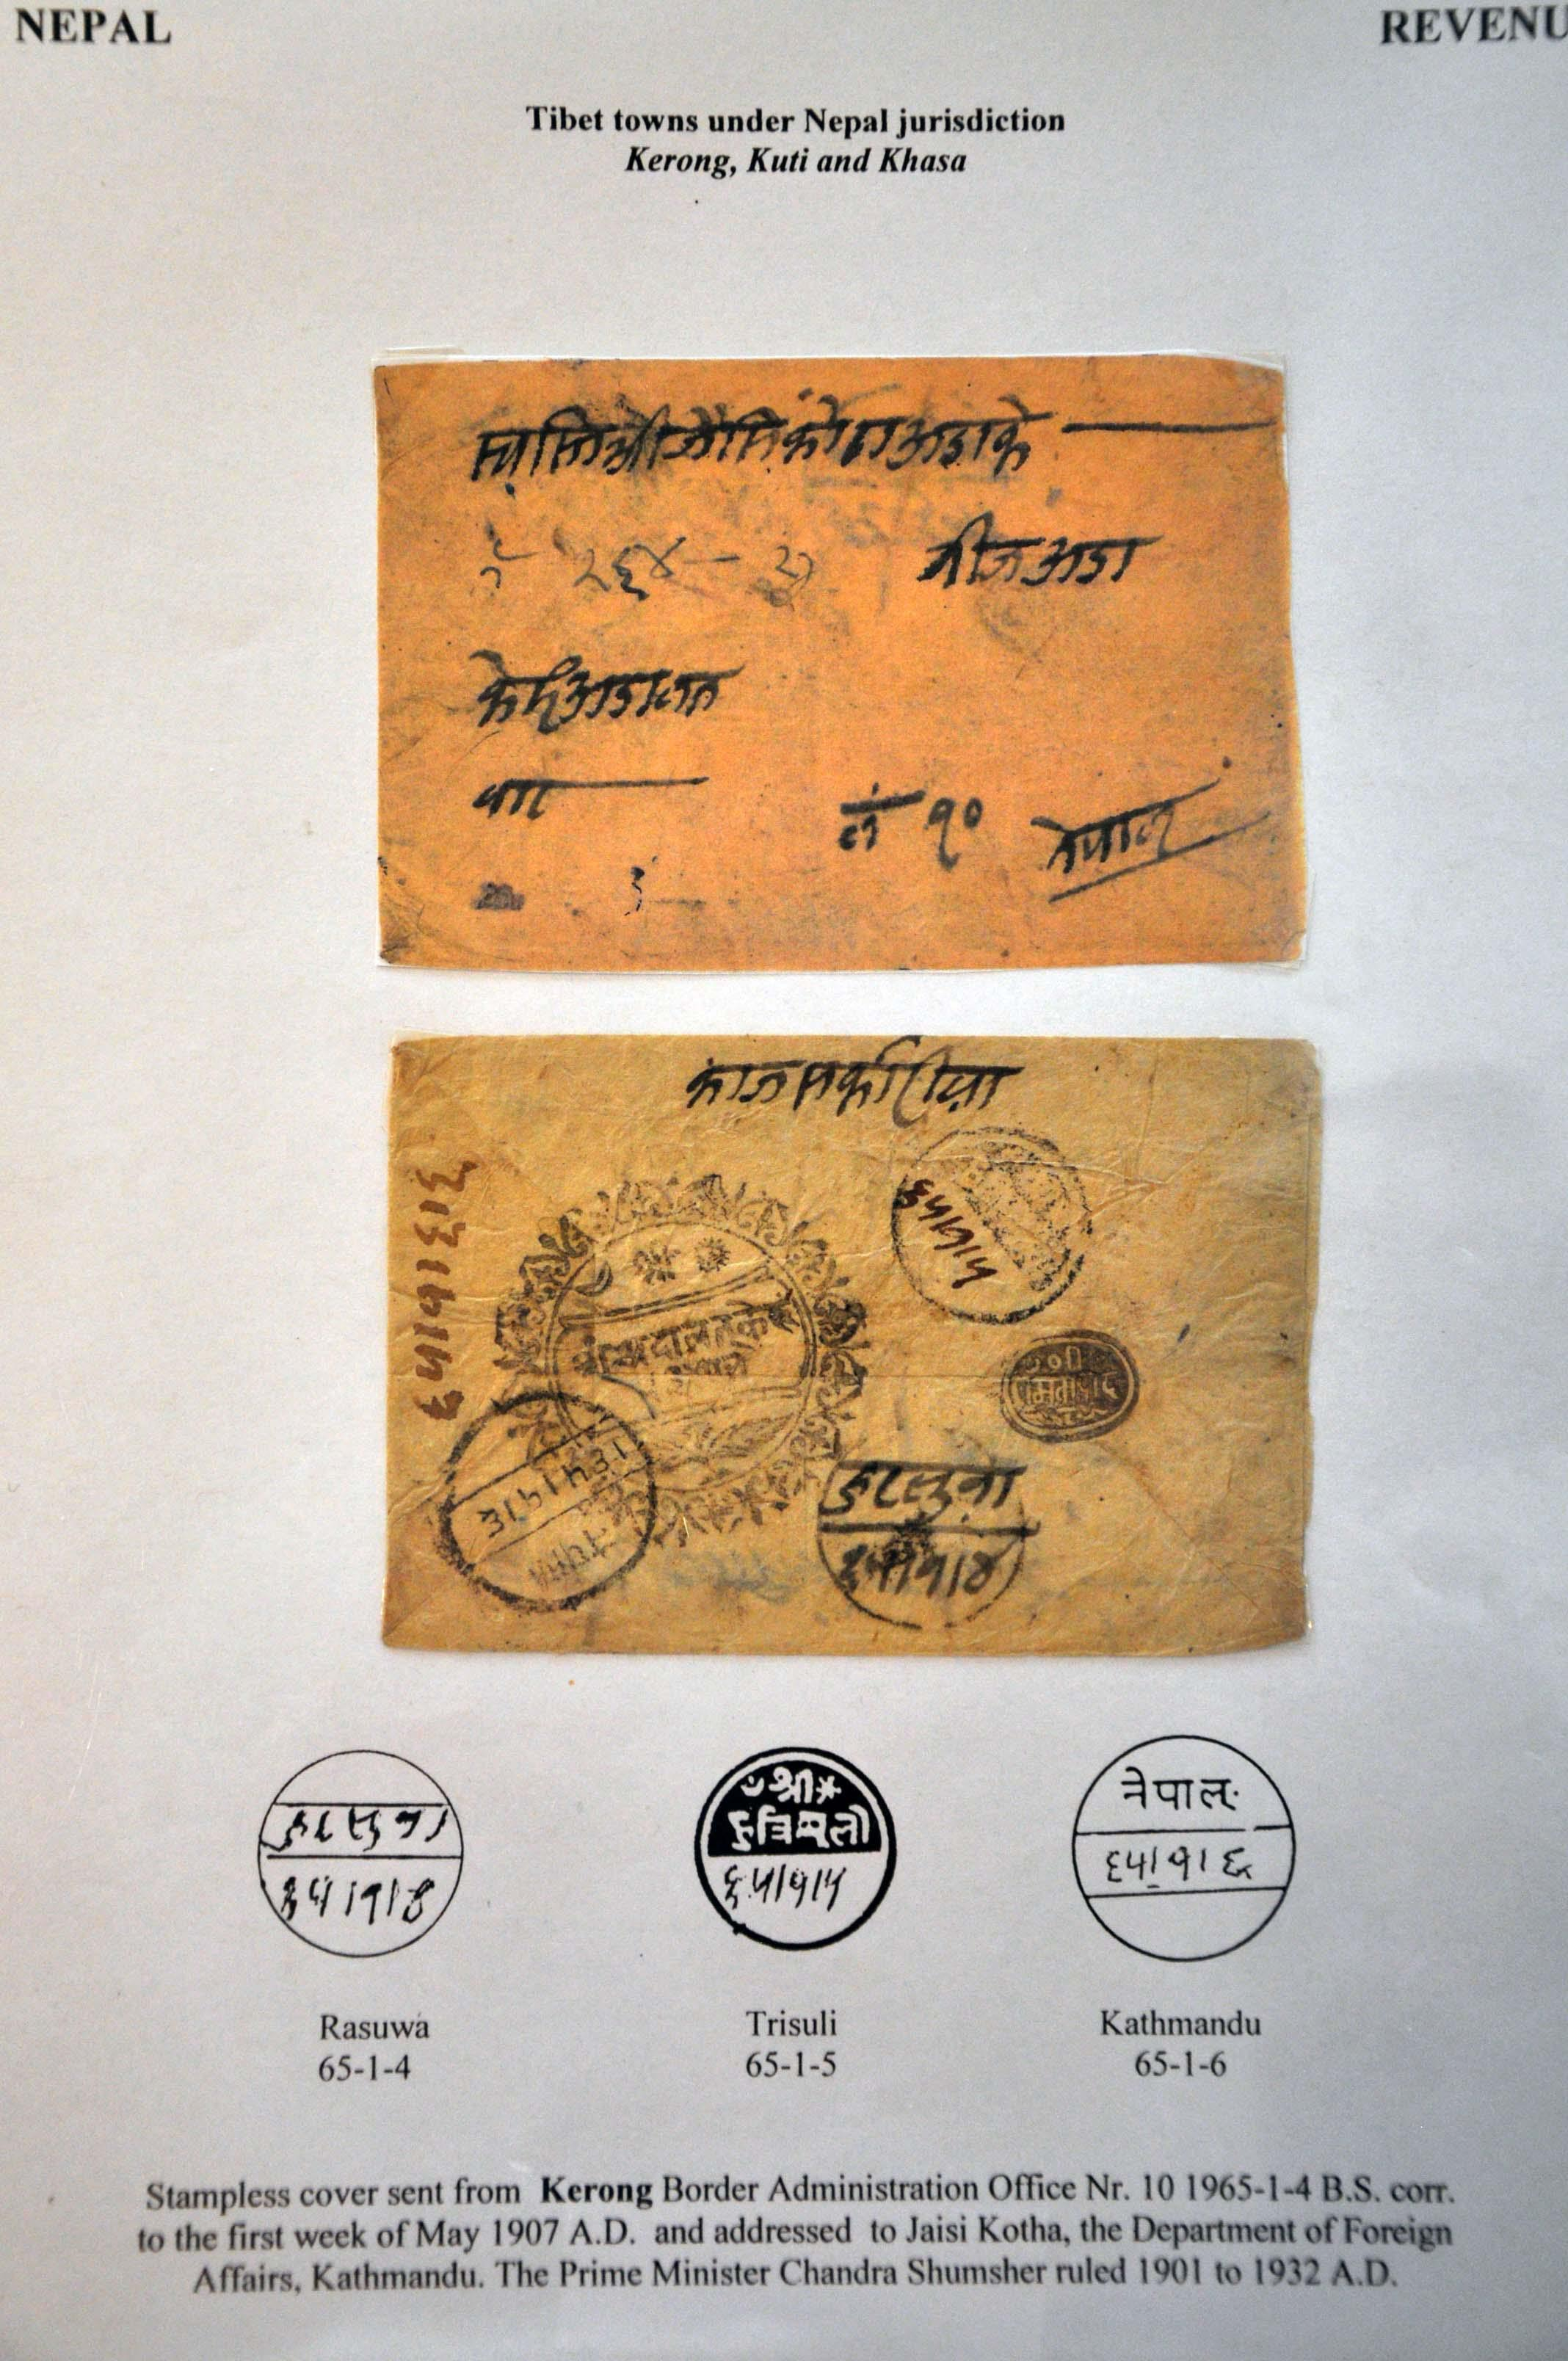 Lot 94 - Great Britain and former colonies Nepal -  Corinphila Veilingen Auction 245-246 Day 1 - Nepal - The Dick van der Wateren Collection, Foreign countries - Single lots, Picture postcards